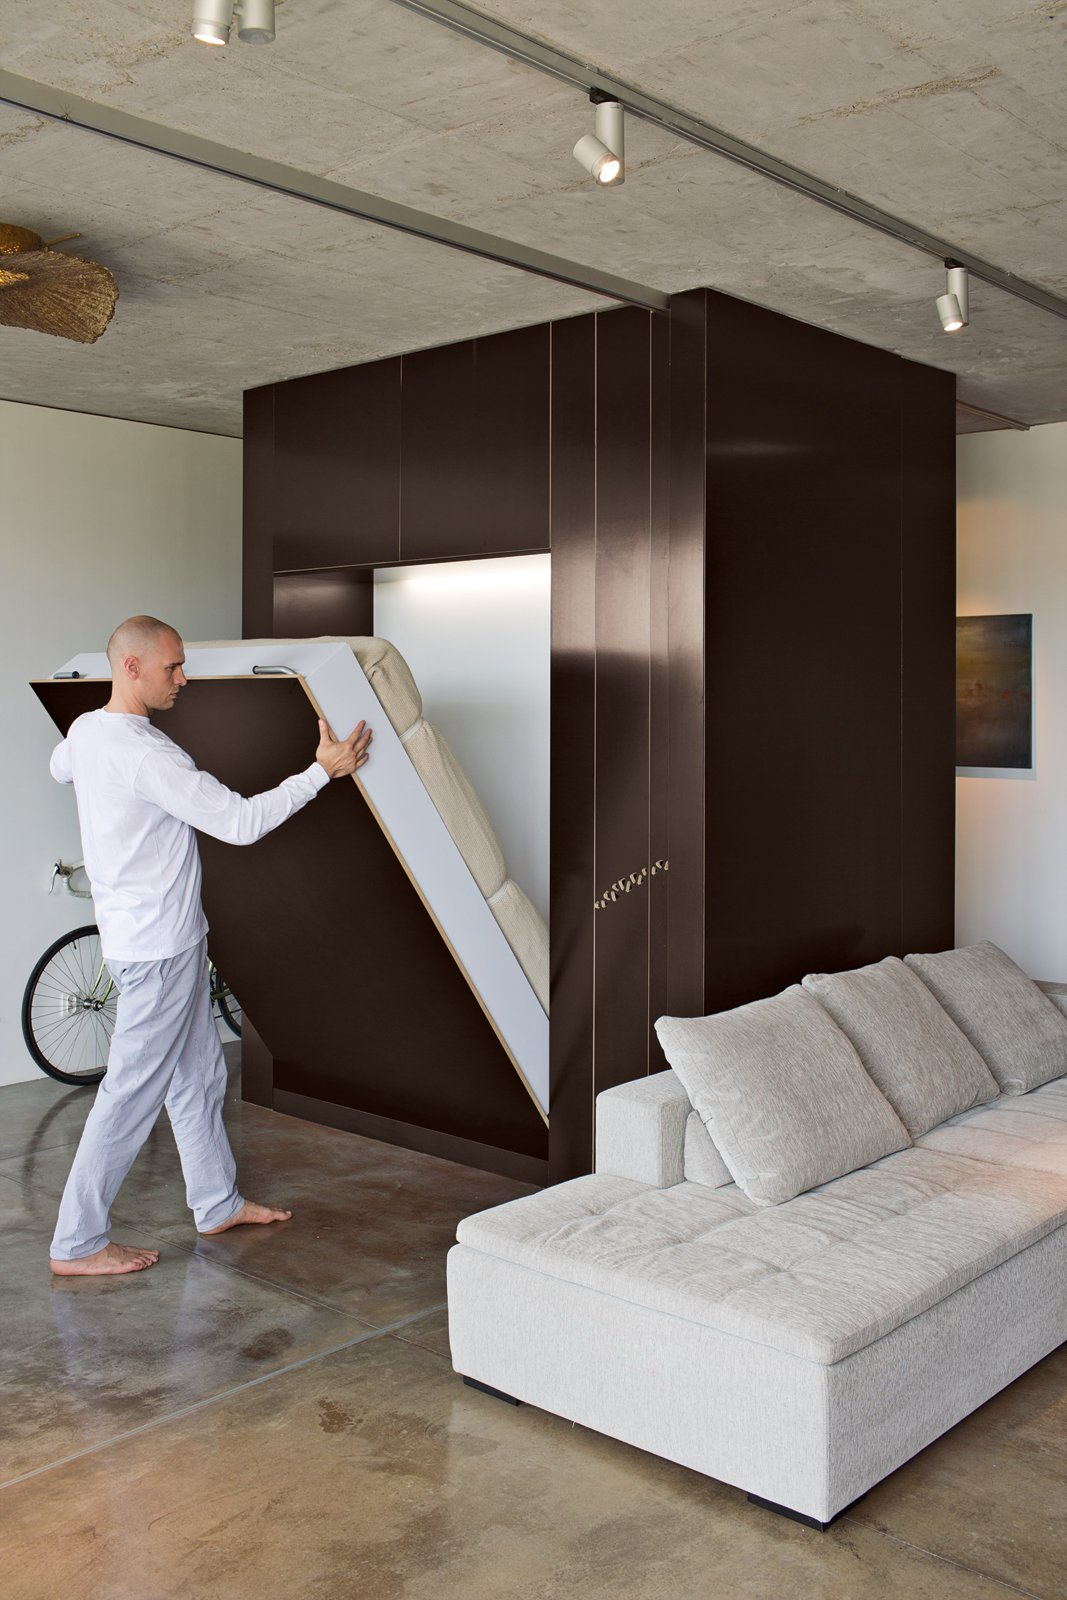 By lowering the custom Murphy bed and rolling a sliding plywood door, Novak-Zemplinski creates an insta-guestroom. Photo by Andreas Meichsner.  Bedrooms by Dwell from Warsaw Loft with Multifunctional Furniture